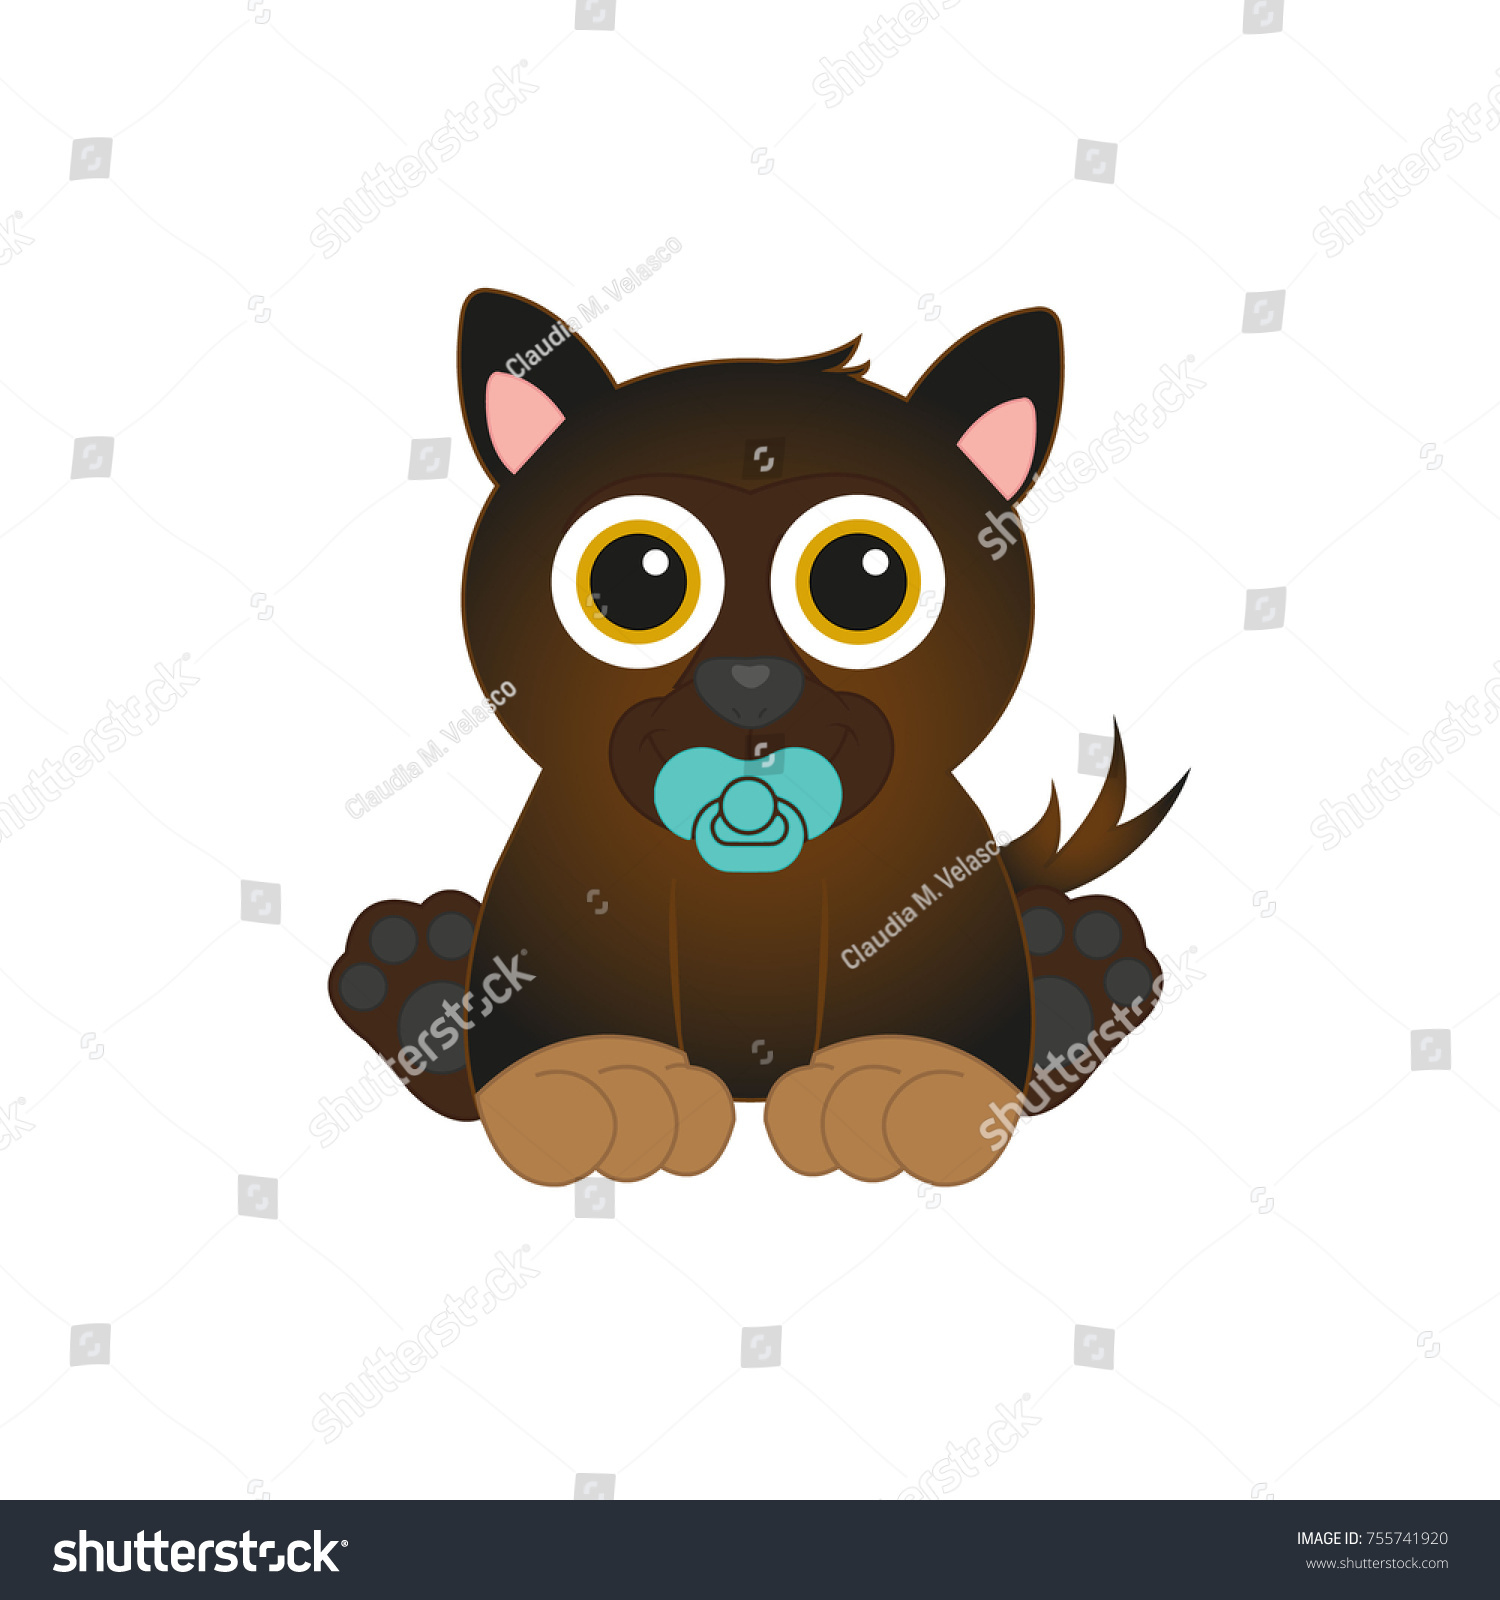 Beautiful Bear Brown Adorable Dog - stock-vector-adorable-baby-german-shepherd-puppy-dog-sitting-down-on-the-floor-with-its-brown-paws-on-front-755741920  Snapshot_7717100  .jpg